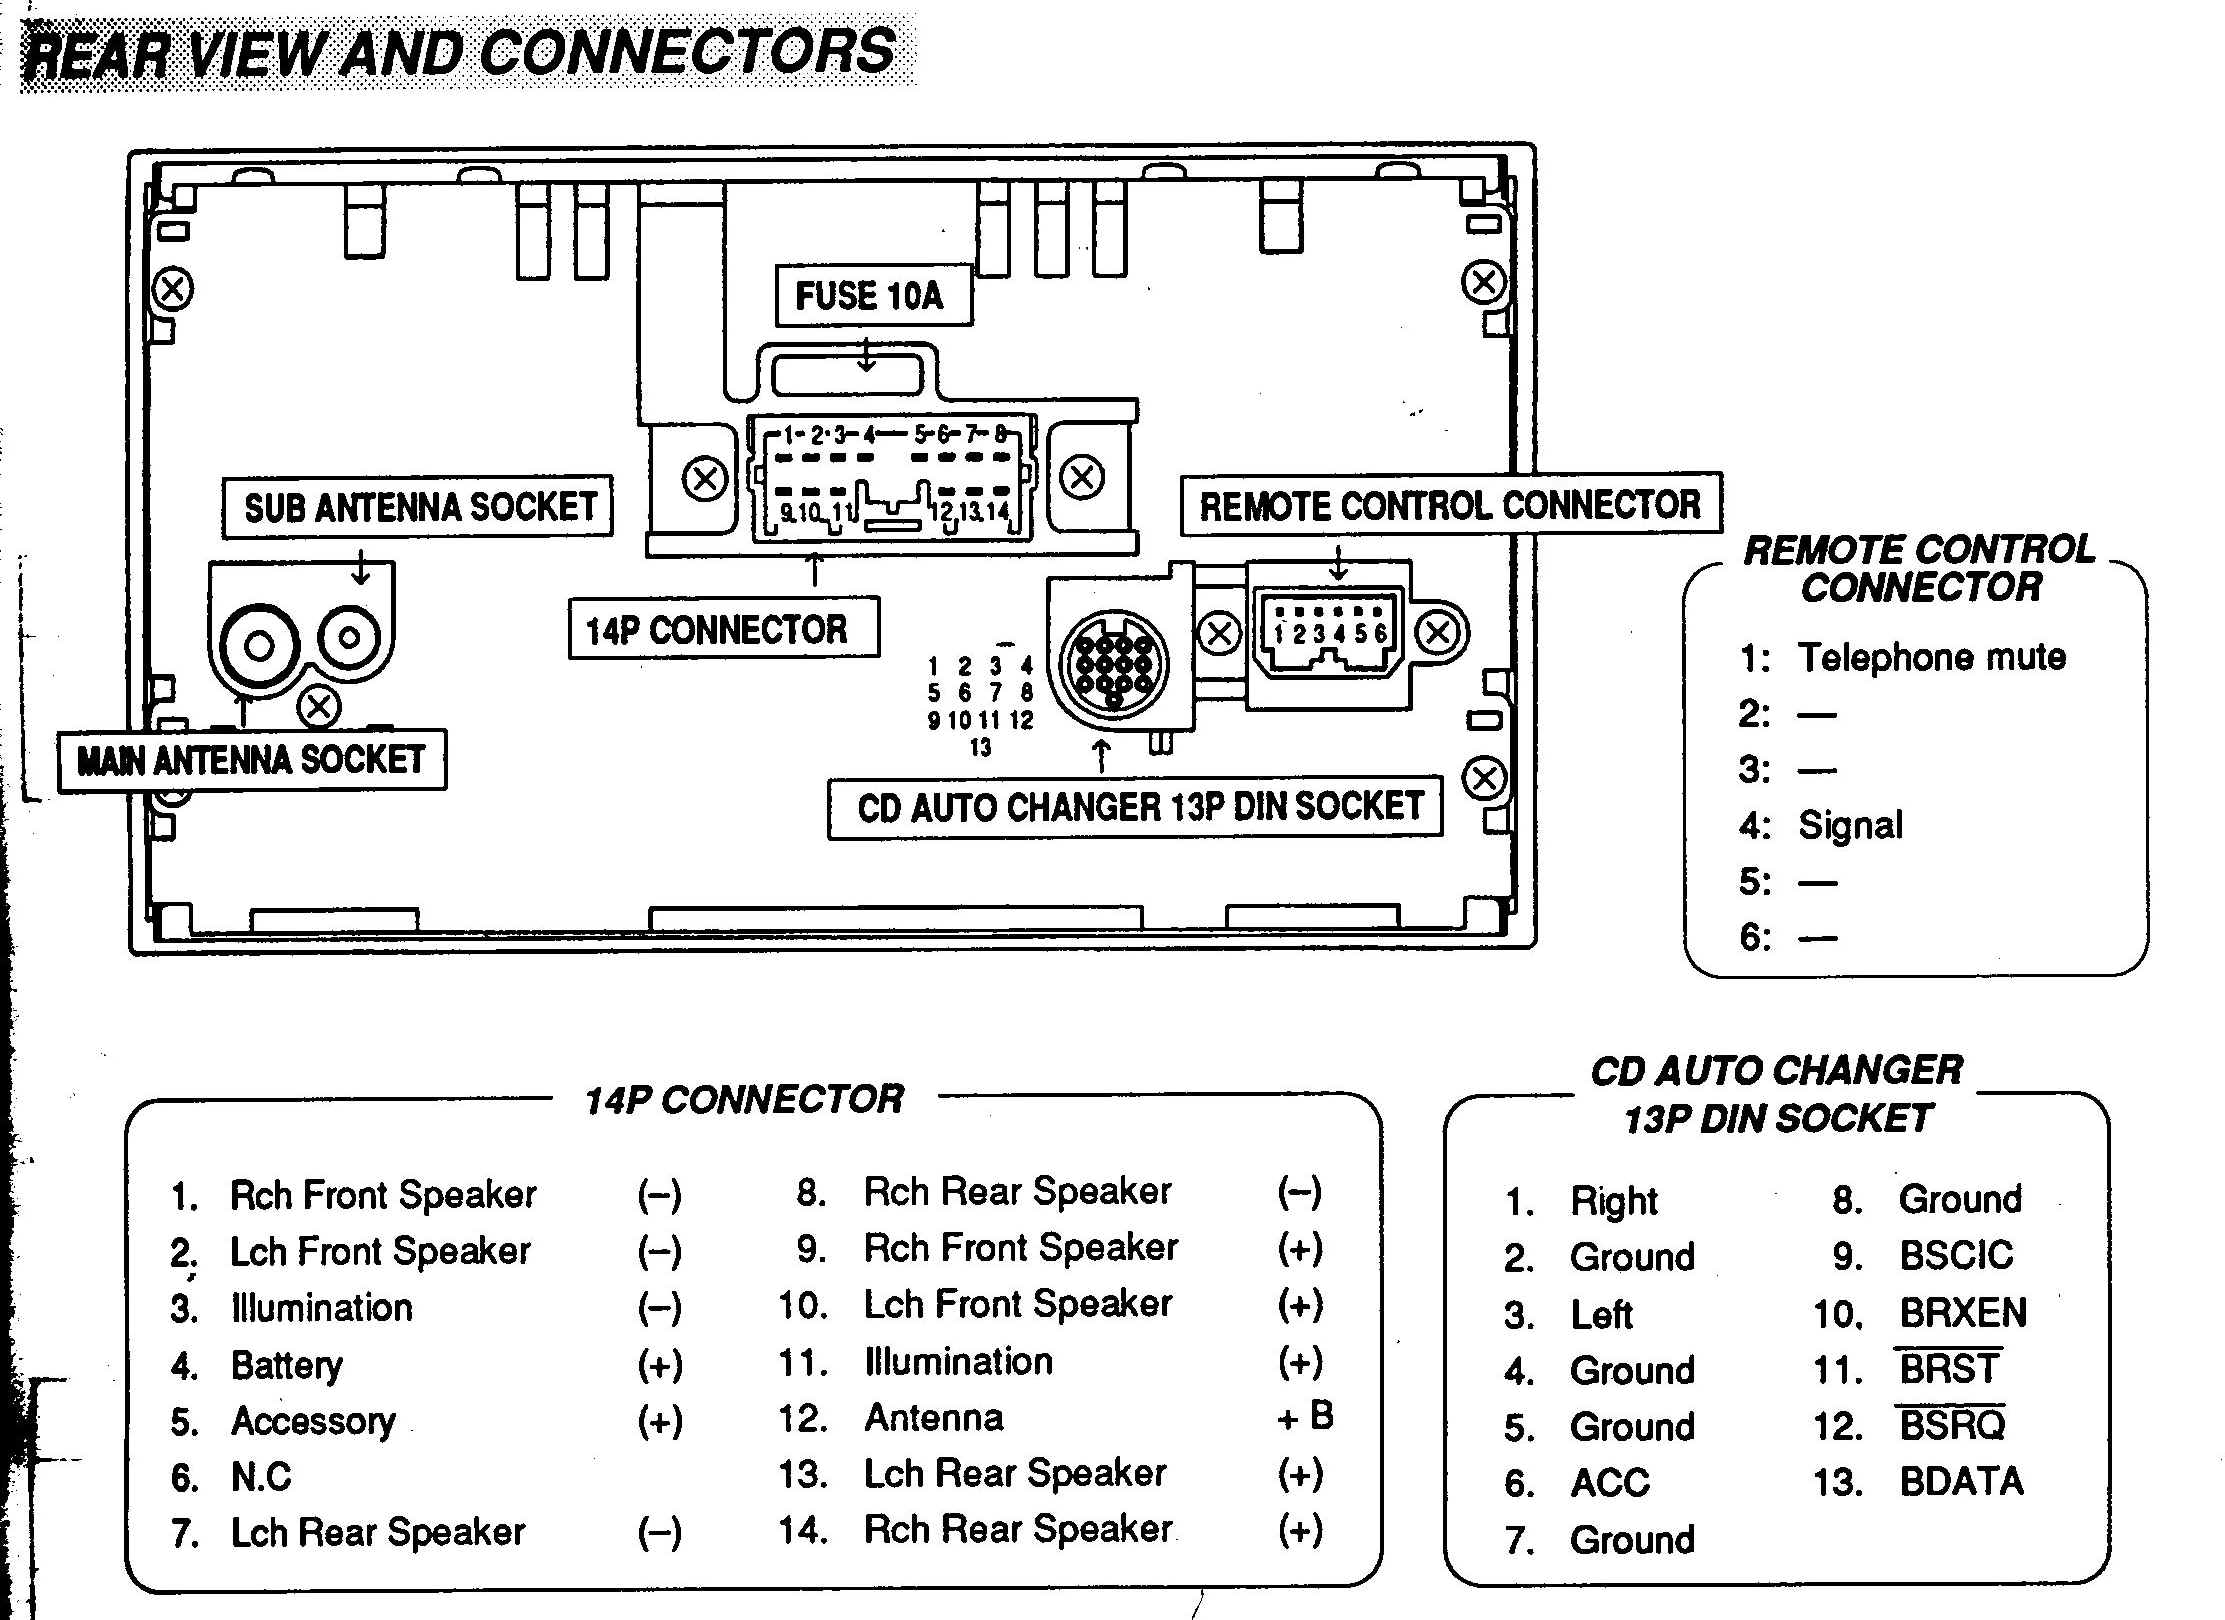 WireHarnessMit121003 mitsubishi radio wiring diagram mitsubishi eclipse wiring diagram mitsubishi eclipse wiring diagram at crackthecode.co